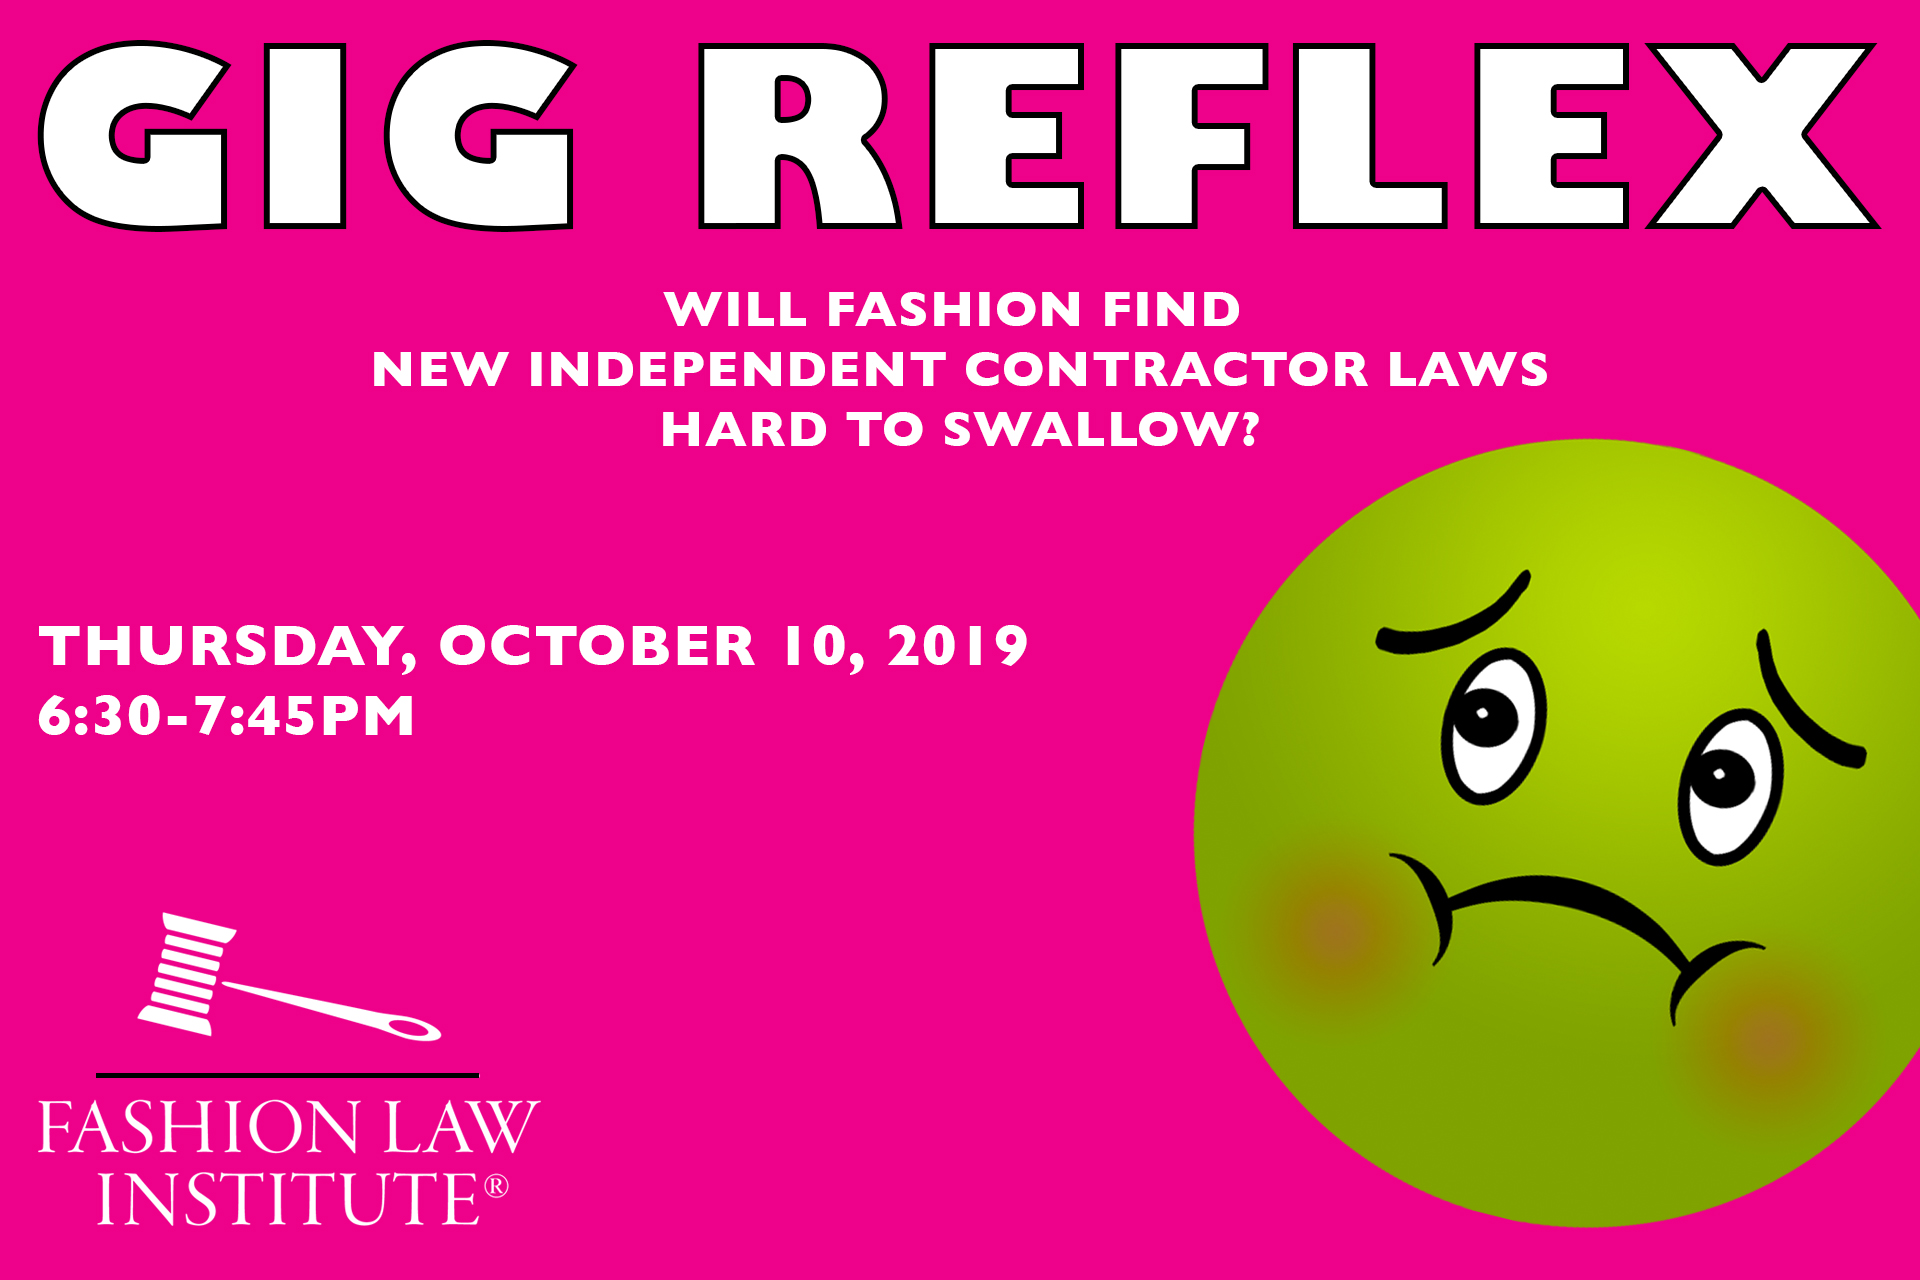 Event announcement - Gig Reflex: Will Fashion Find New Independent Contractor Laws Hard to Swallow? (Graphic: nauseated face emoji)